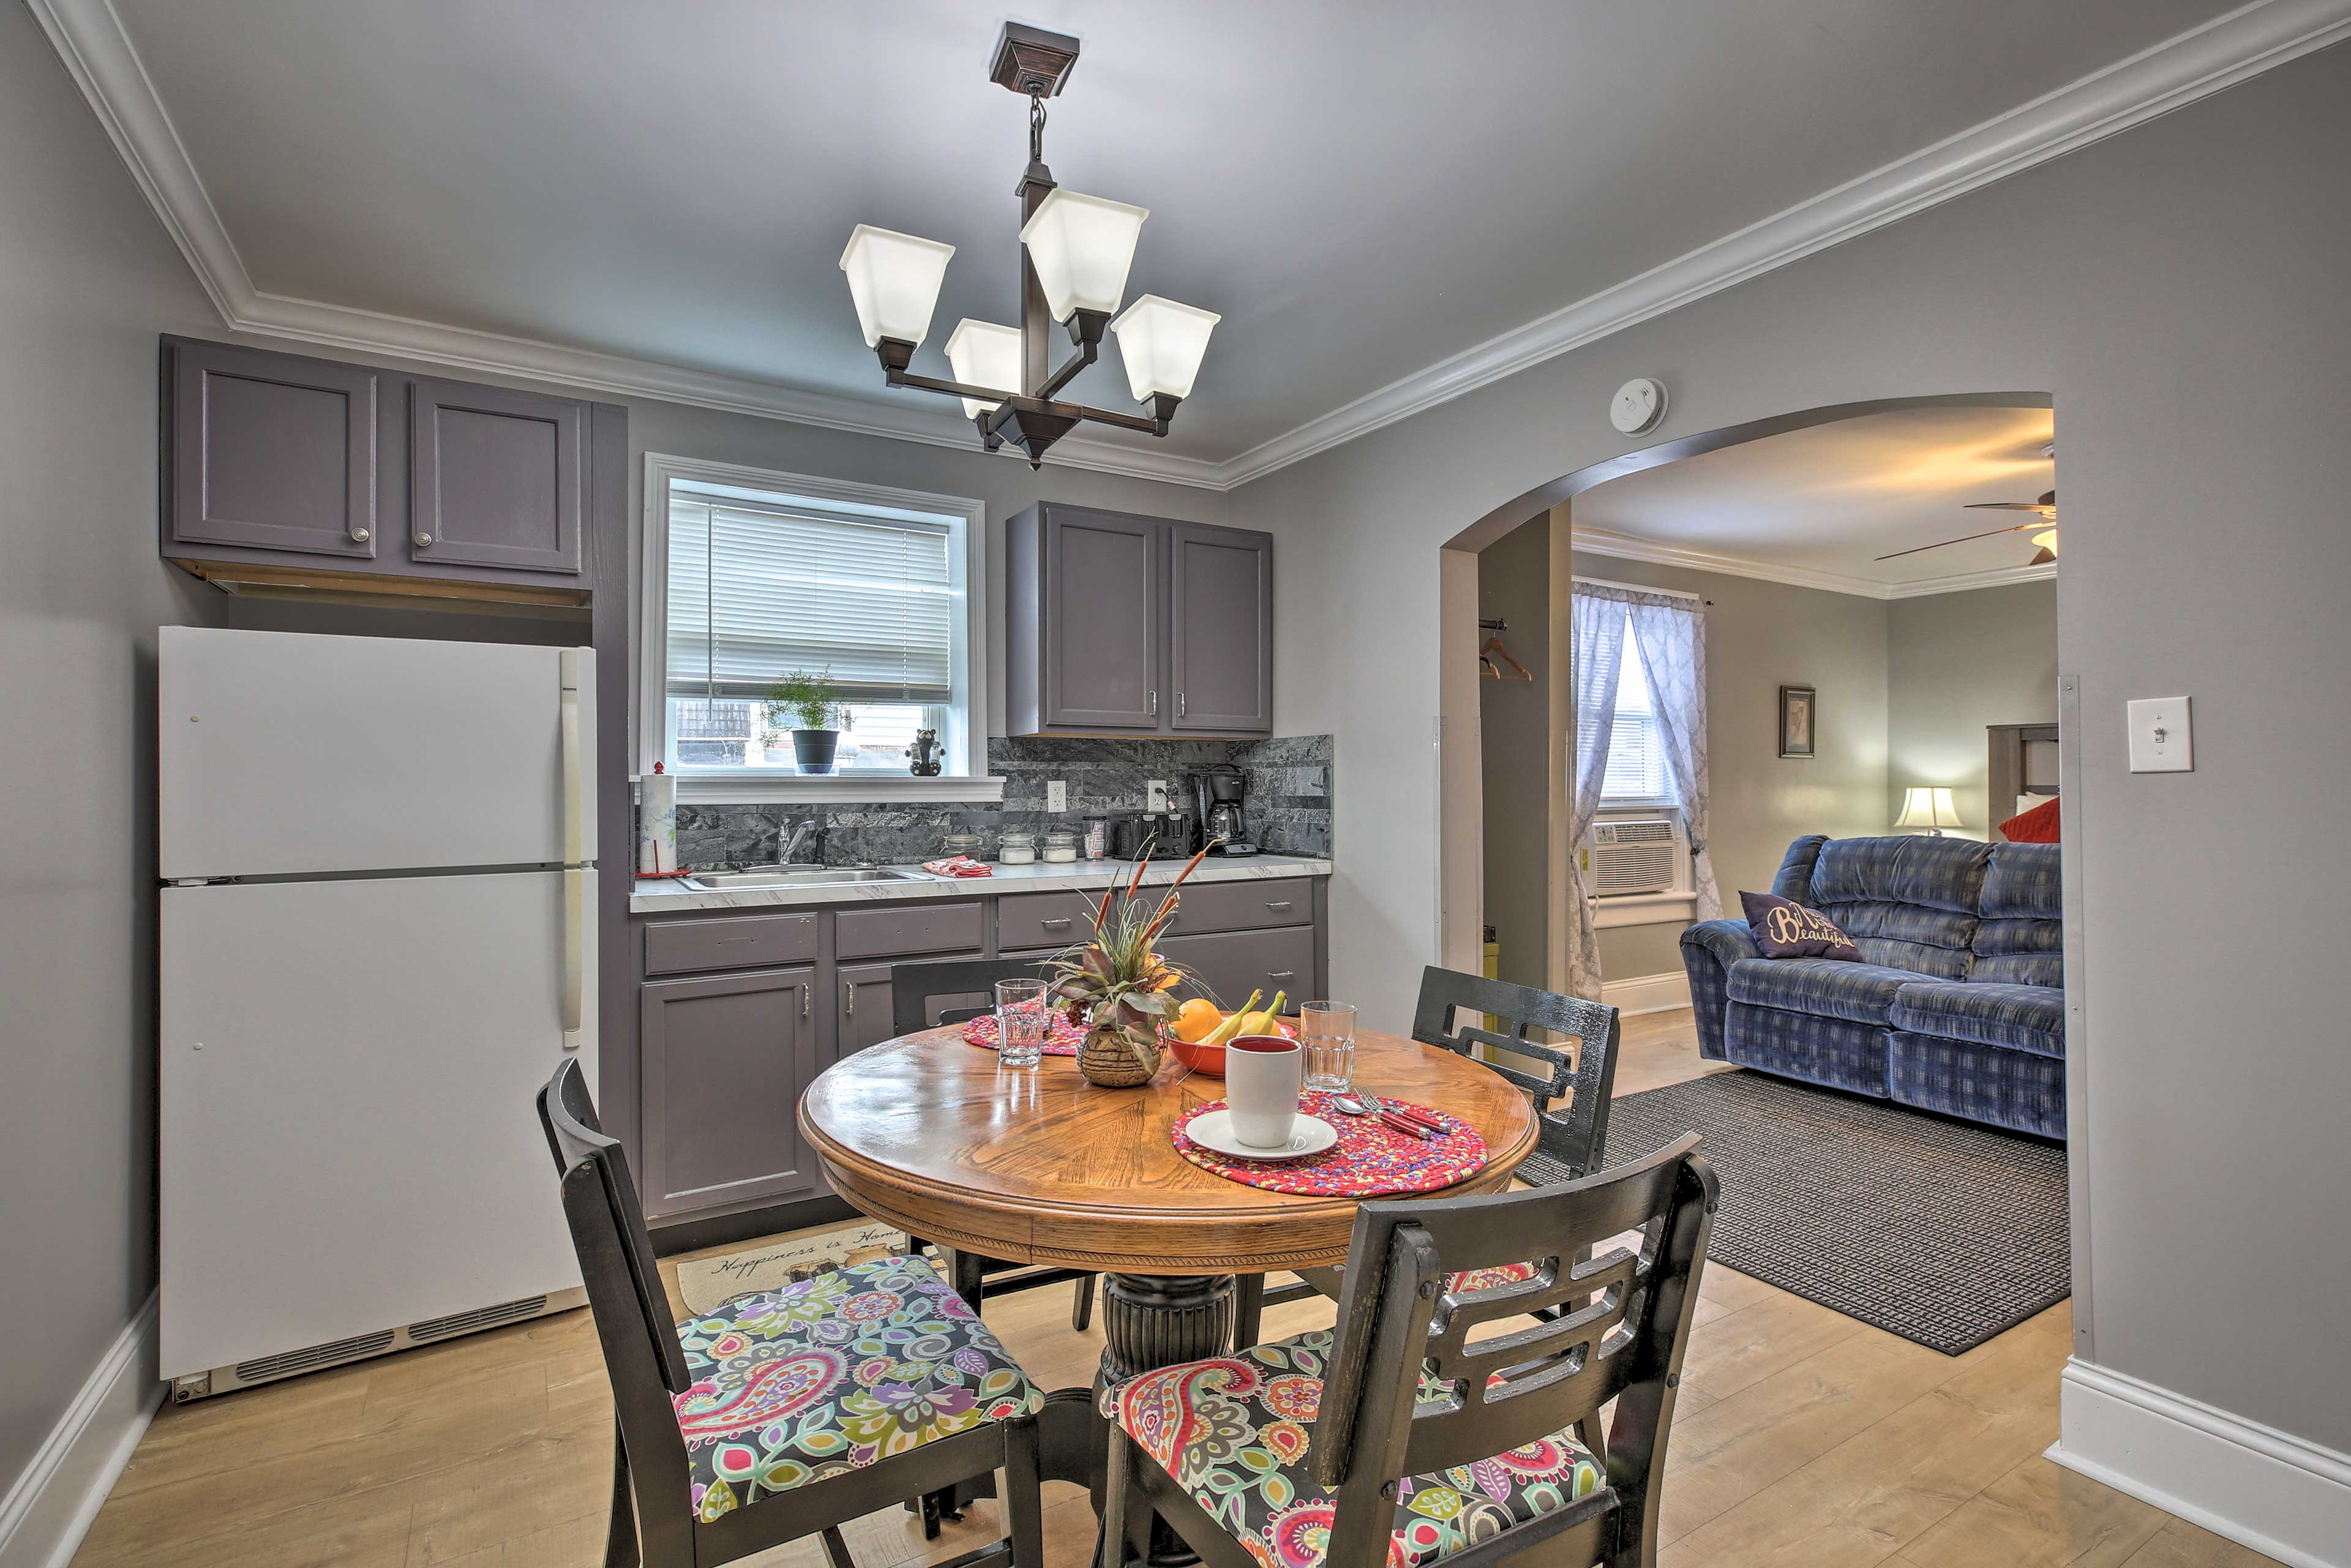 The kitchen is well-equipped to handle your home-cooking needs.